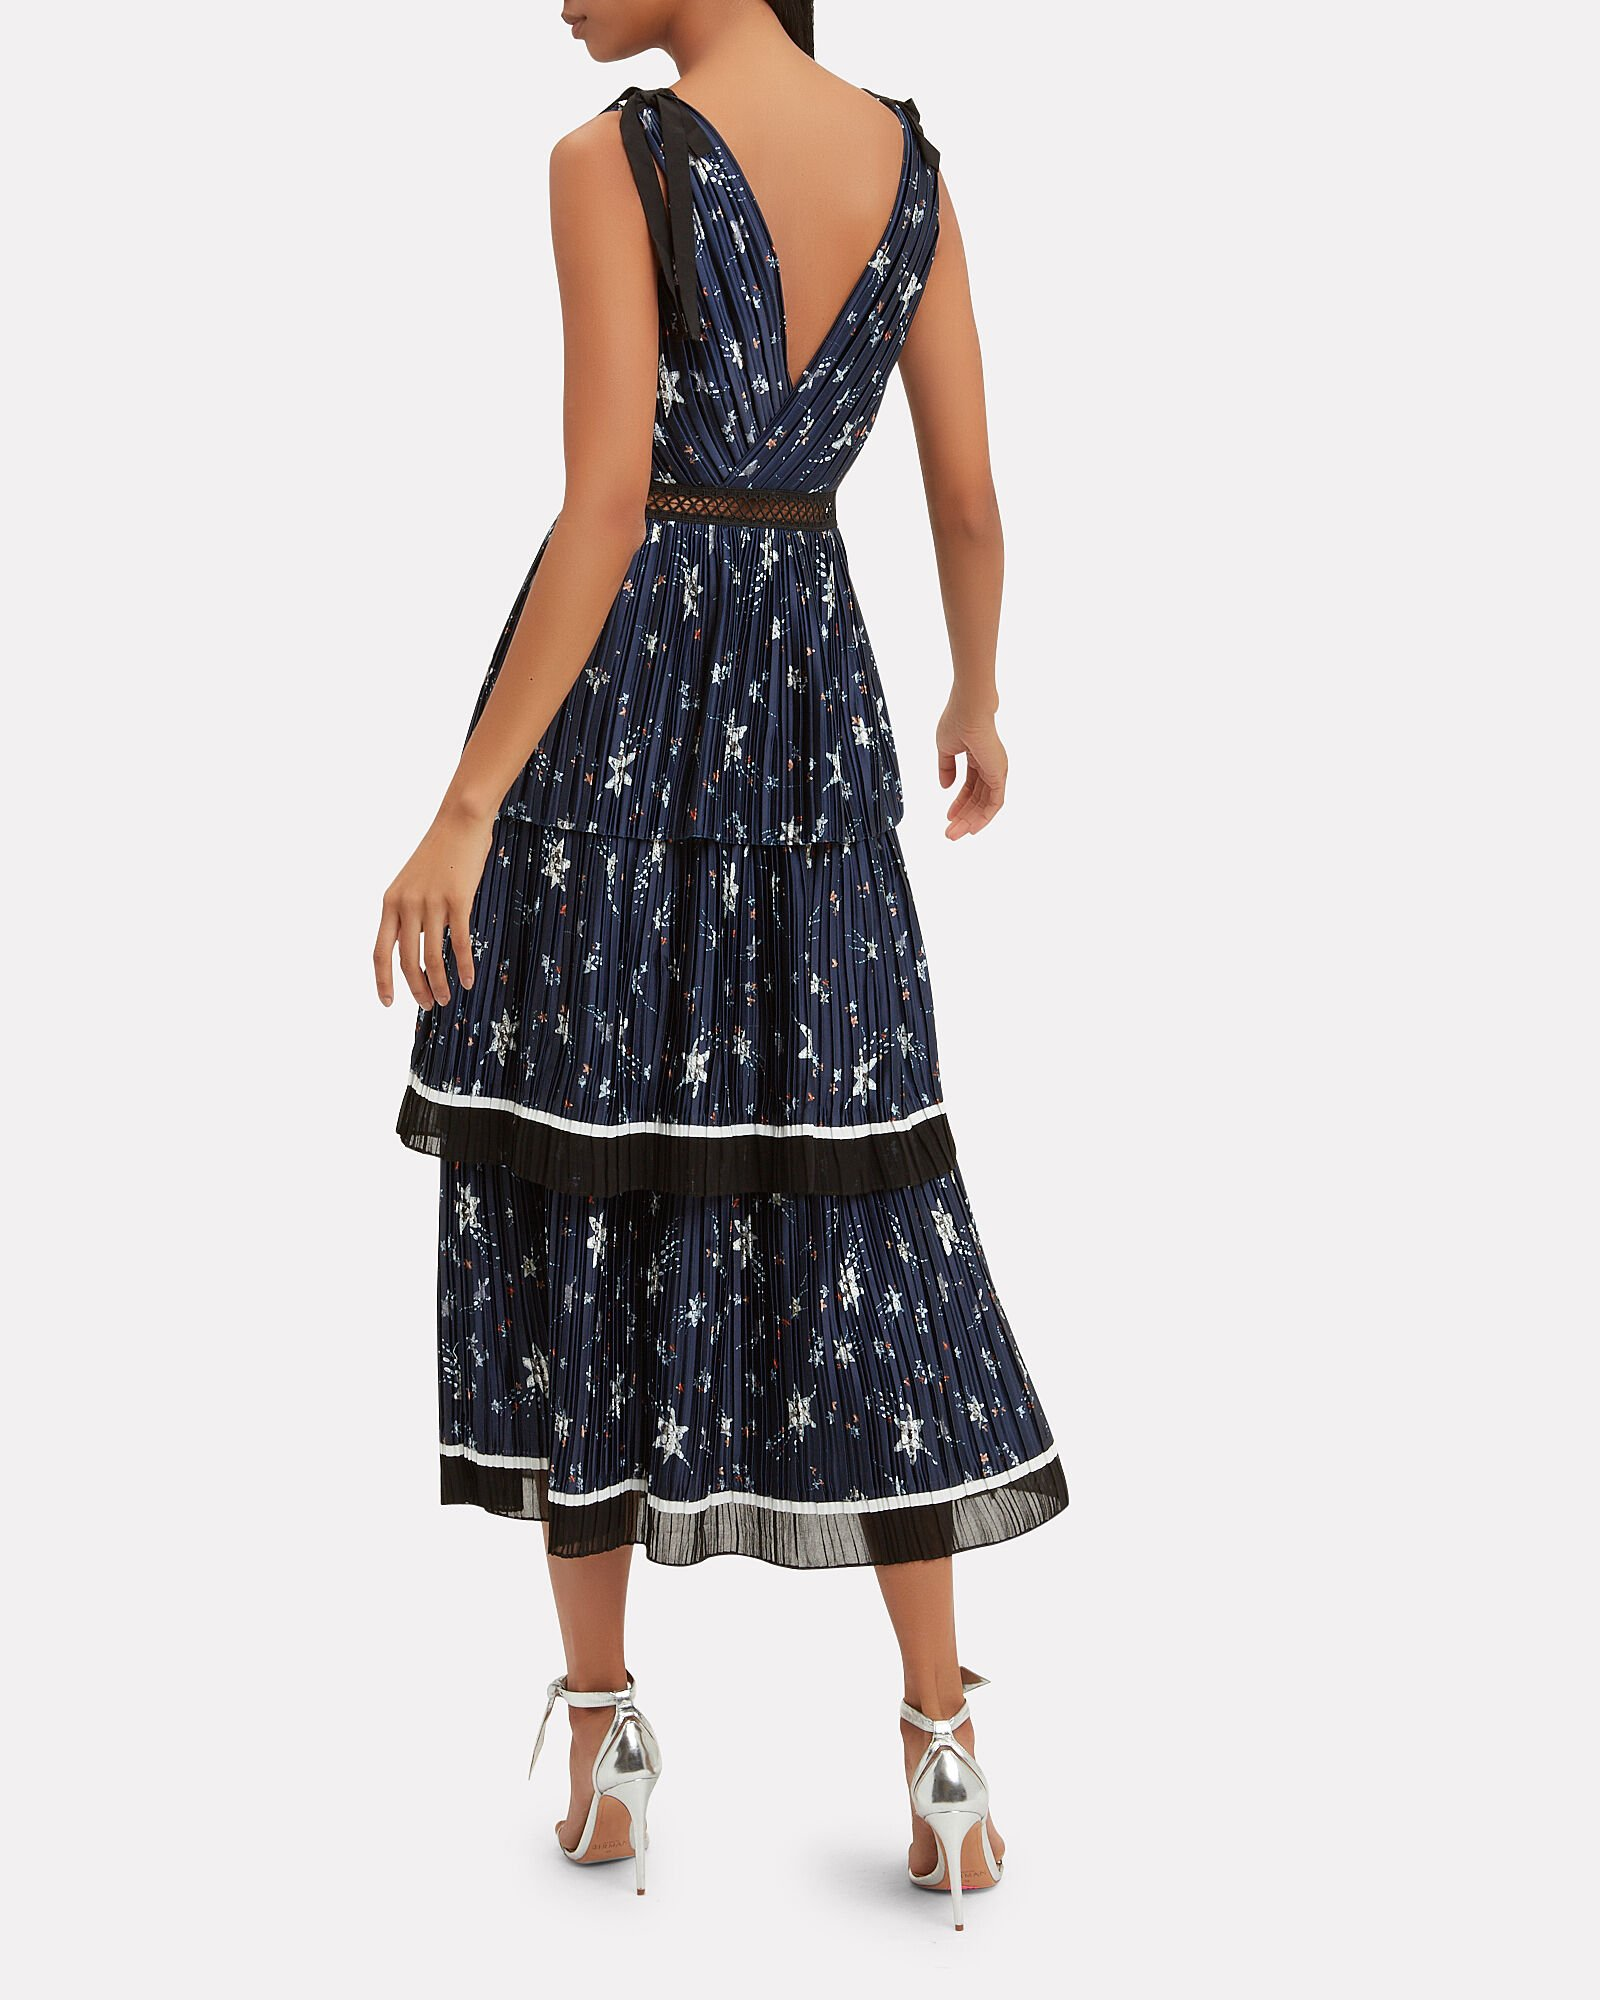 Star Crepe Tiered Dress, NAVY, hi-res